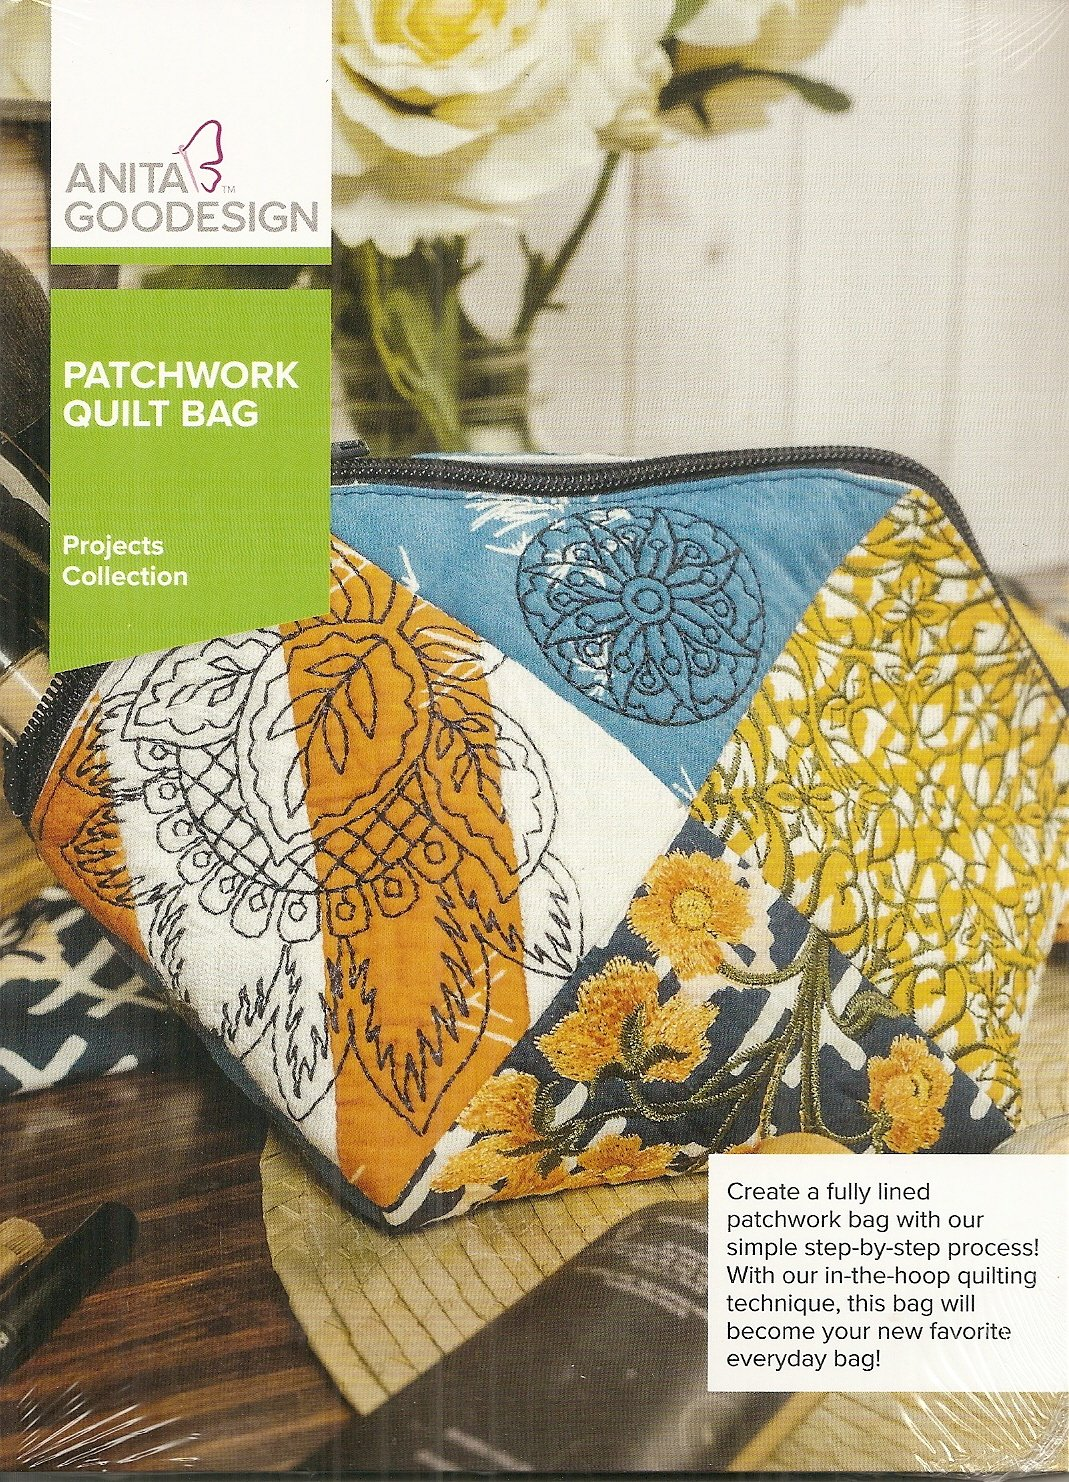 Anita Goodesign Projects Patchwork Quilt Bag